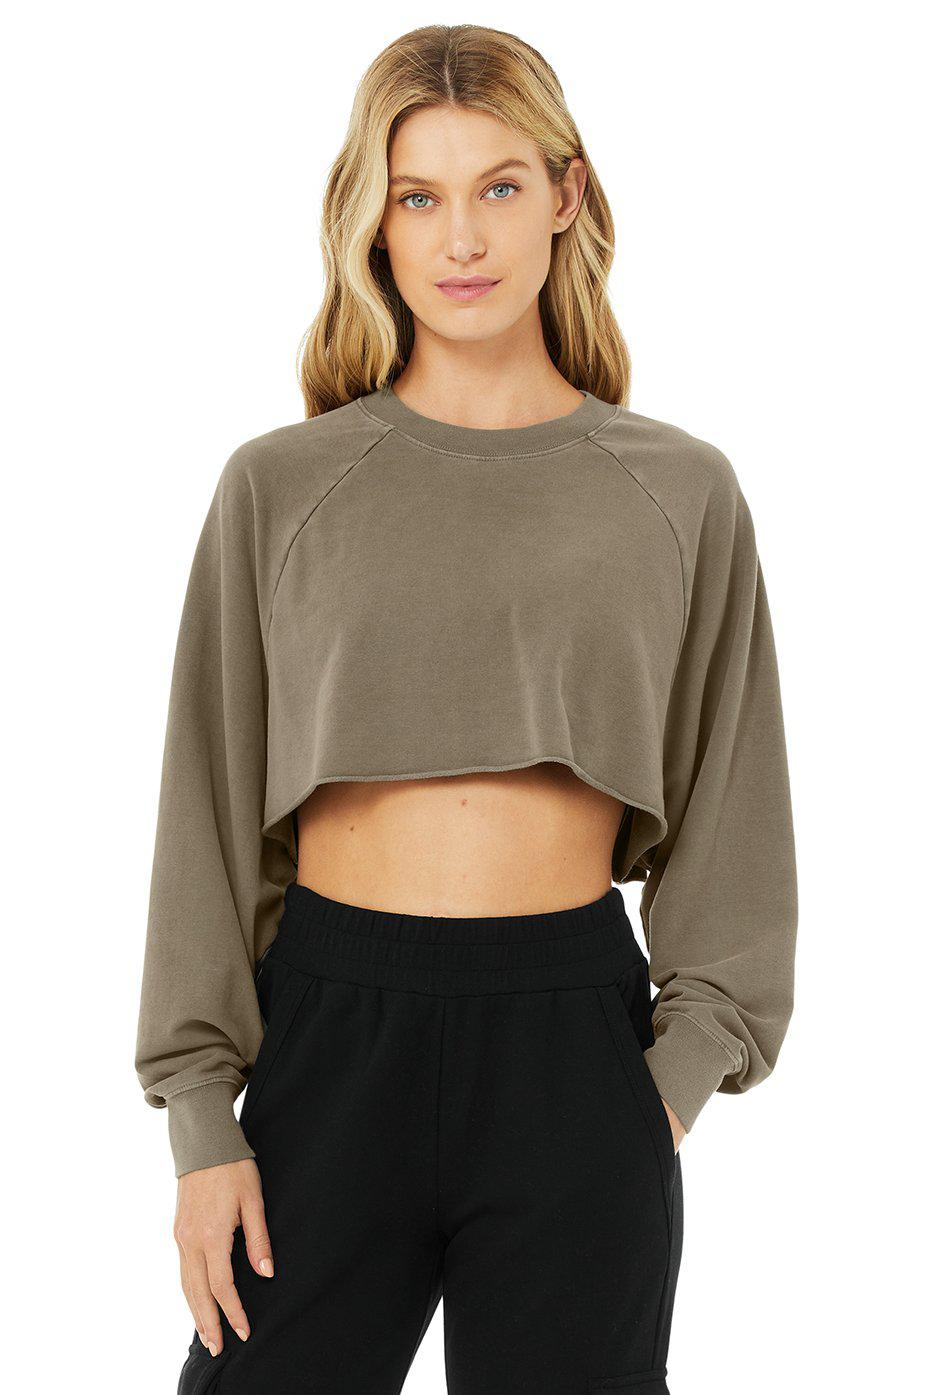 Double Take Pullover - Olive Branch